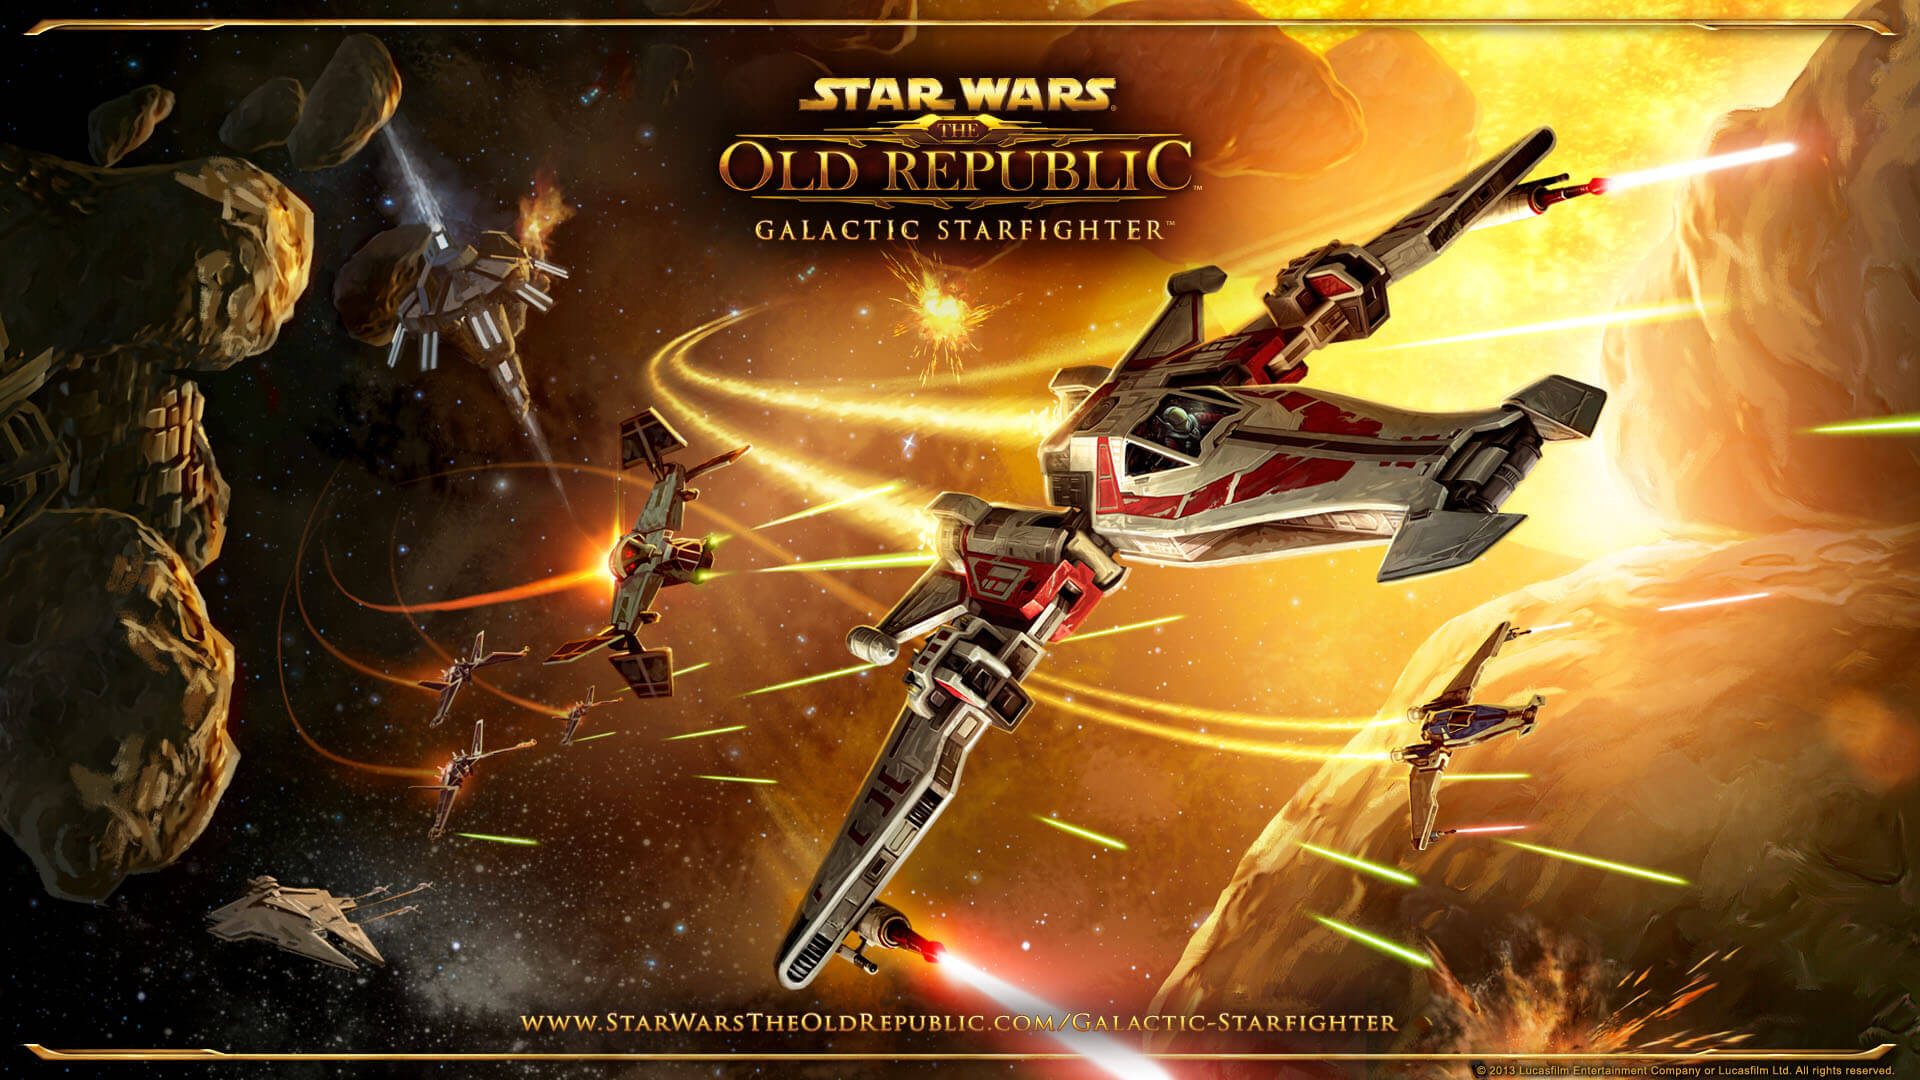 'Star Wars: The Old Republic' Adding Space Sim Gameplay With 'Galactic Starfighter' Expansion